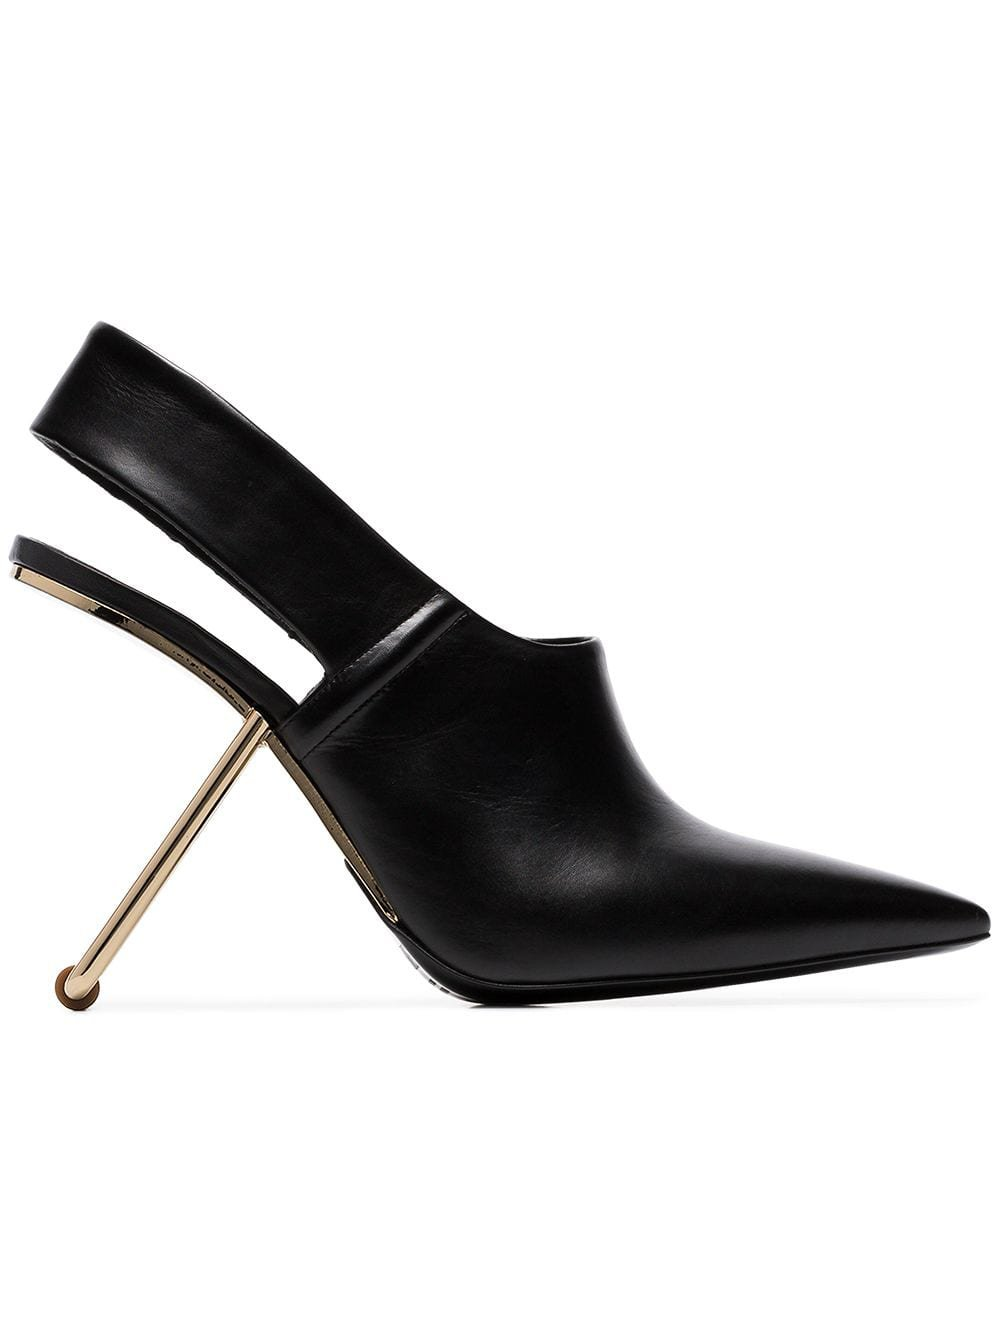 Poiret black 100 slingback cut out heel pumps $1,460 - Buy Online SS19 - Quick Shipping, Price